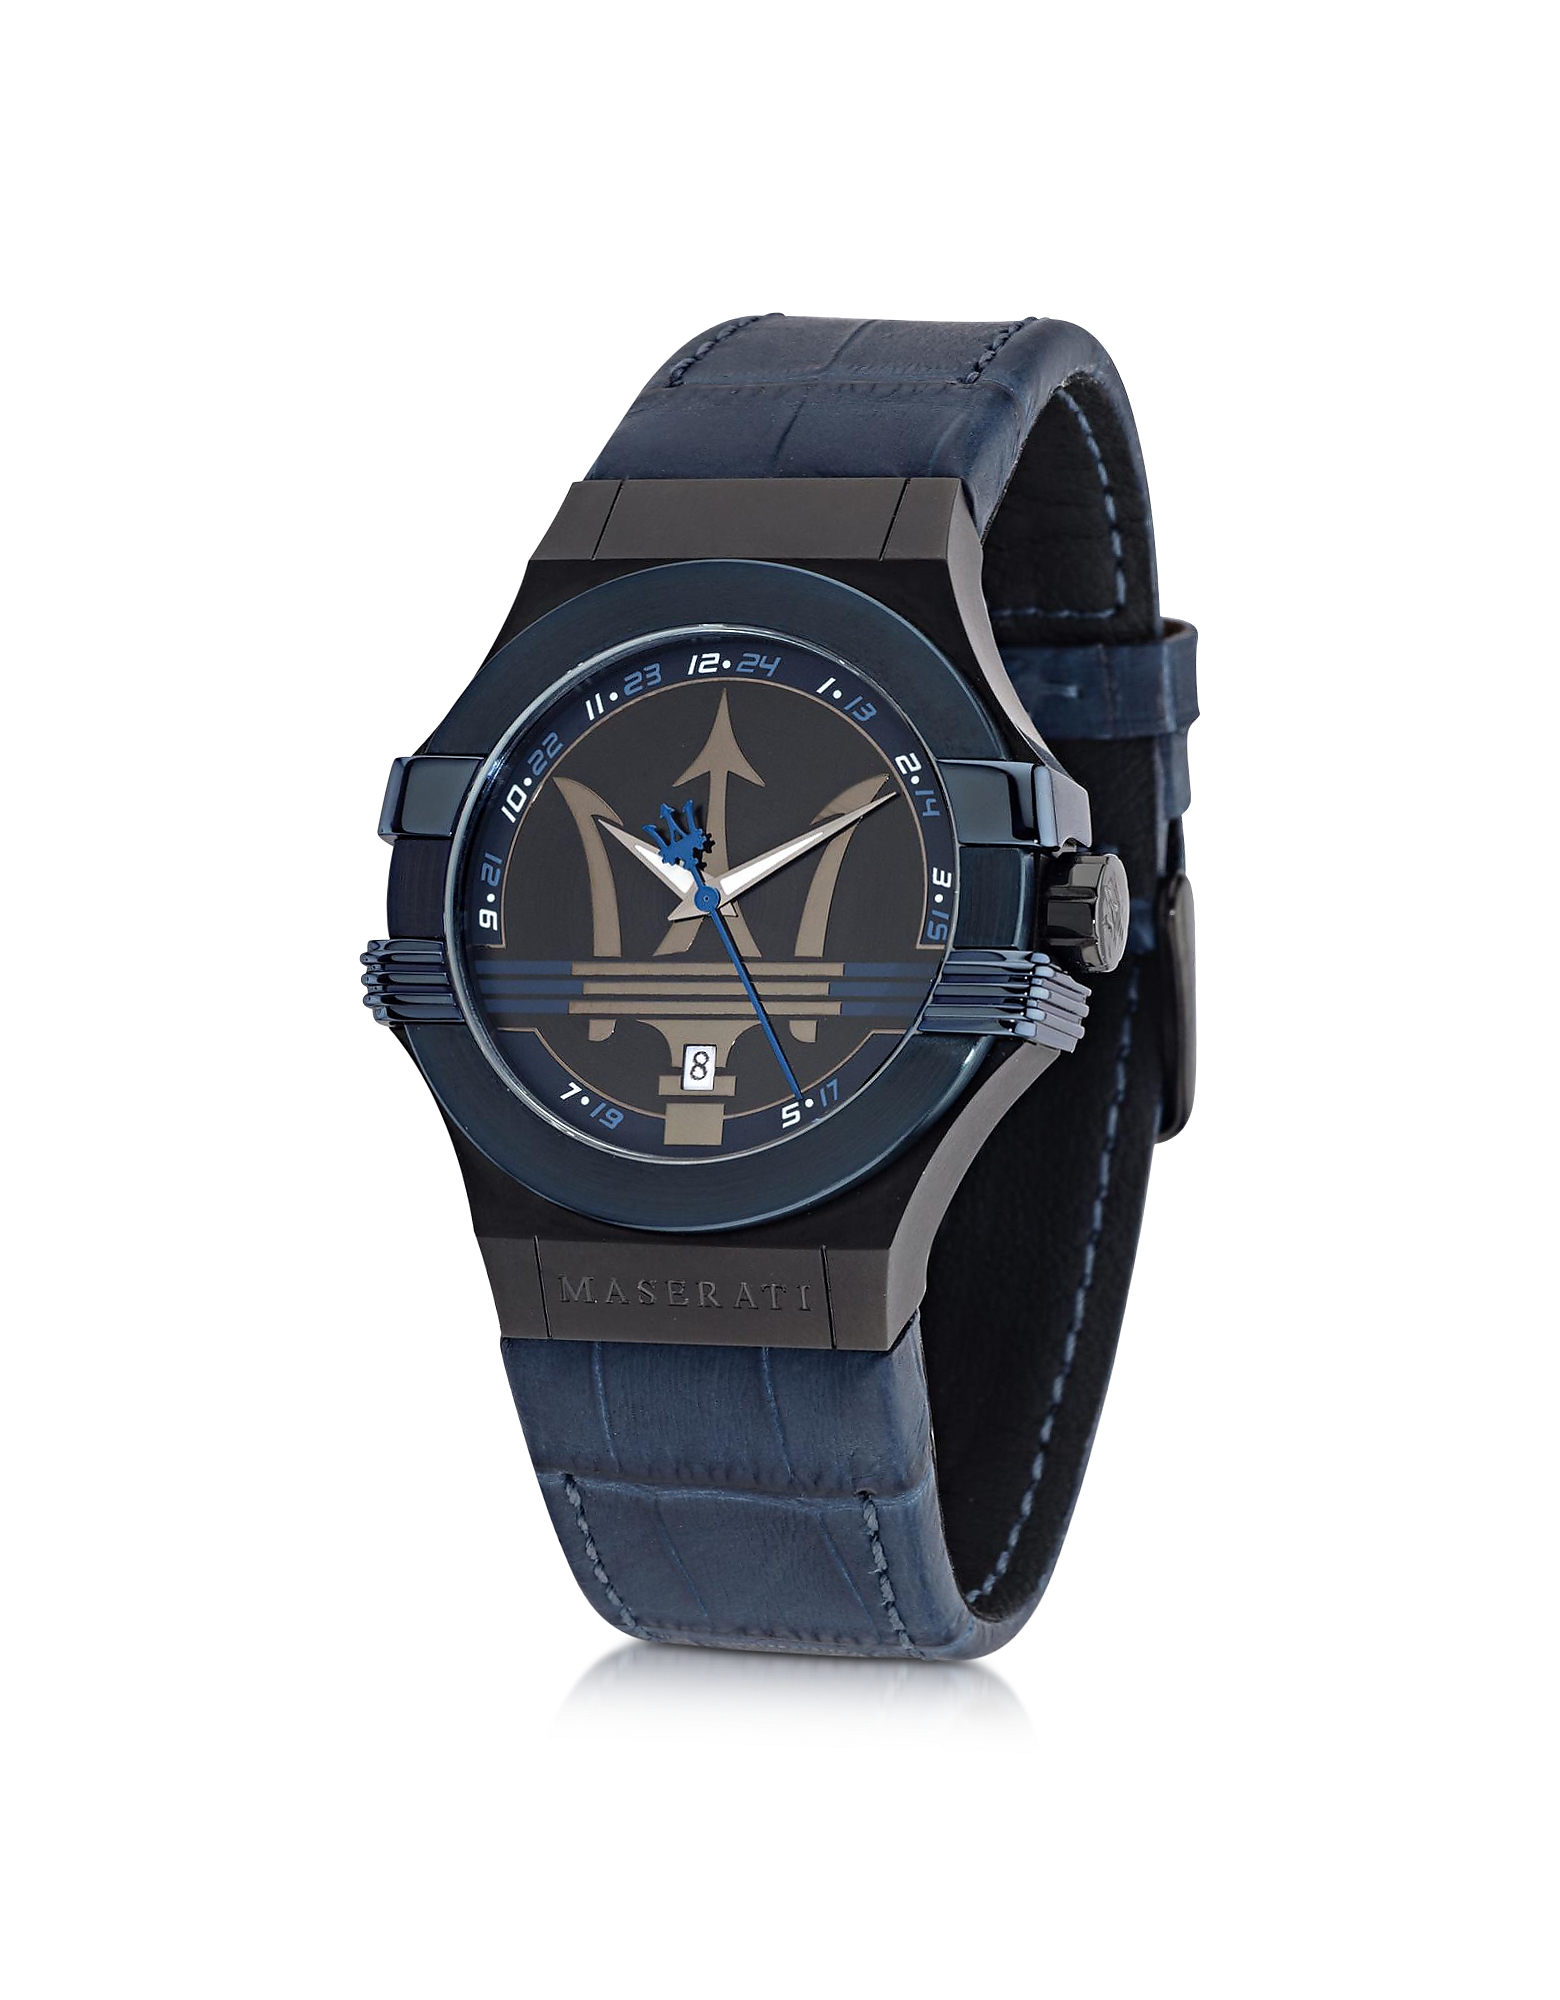 Maserati Men's Watches, Potenza Blue Stainless Steel Men's Watch w/Croco Embossed Leather Band